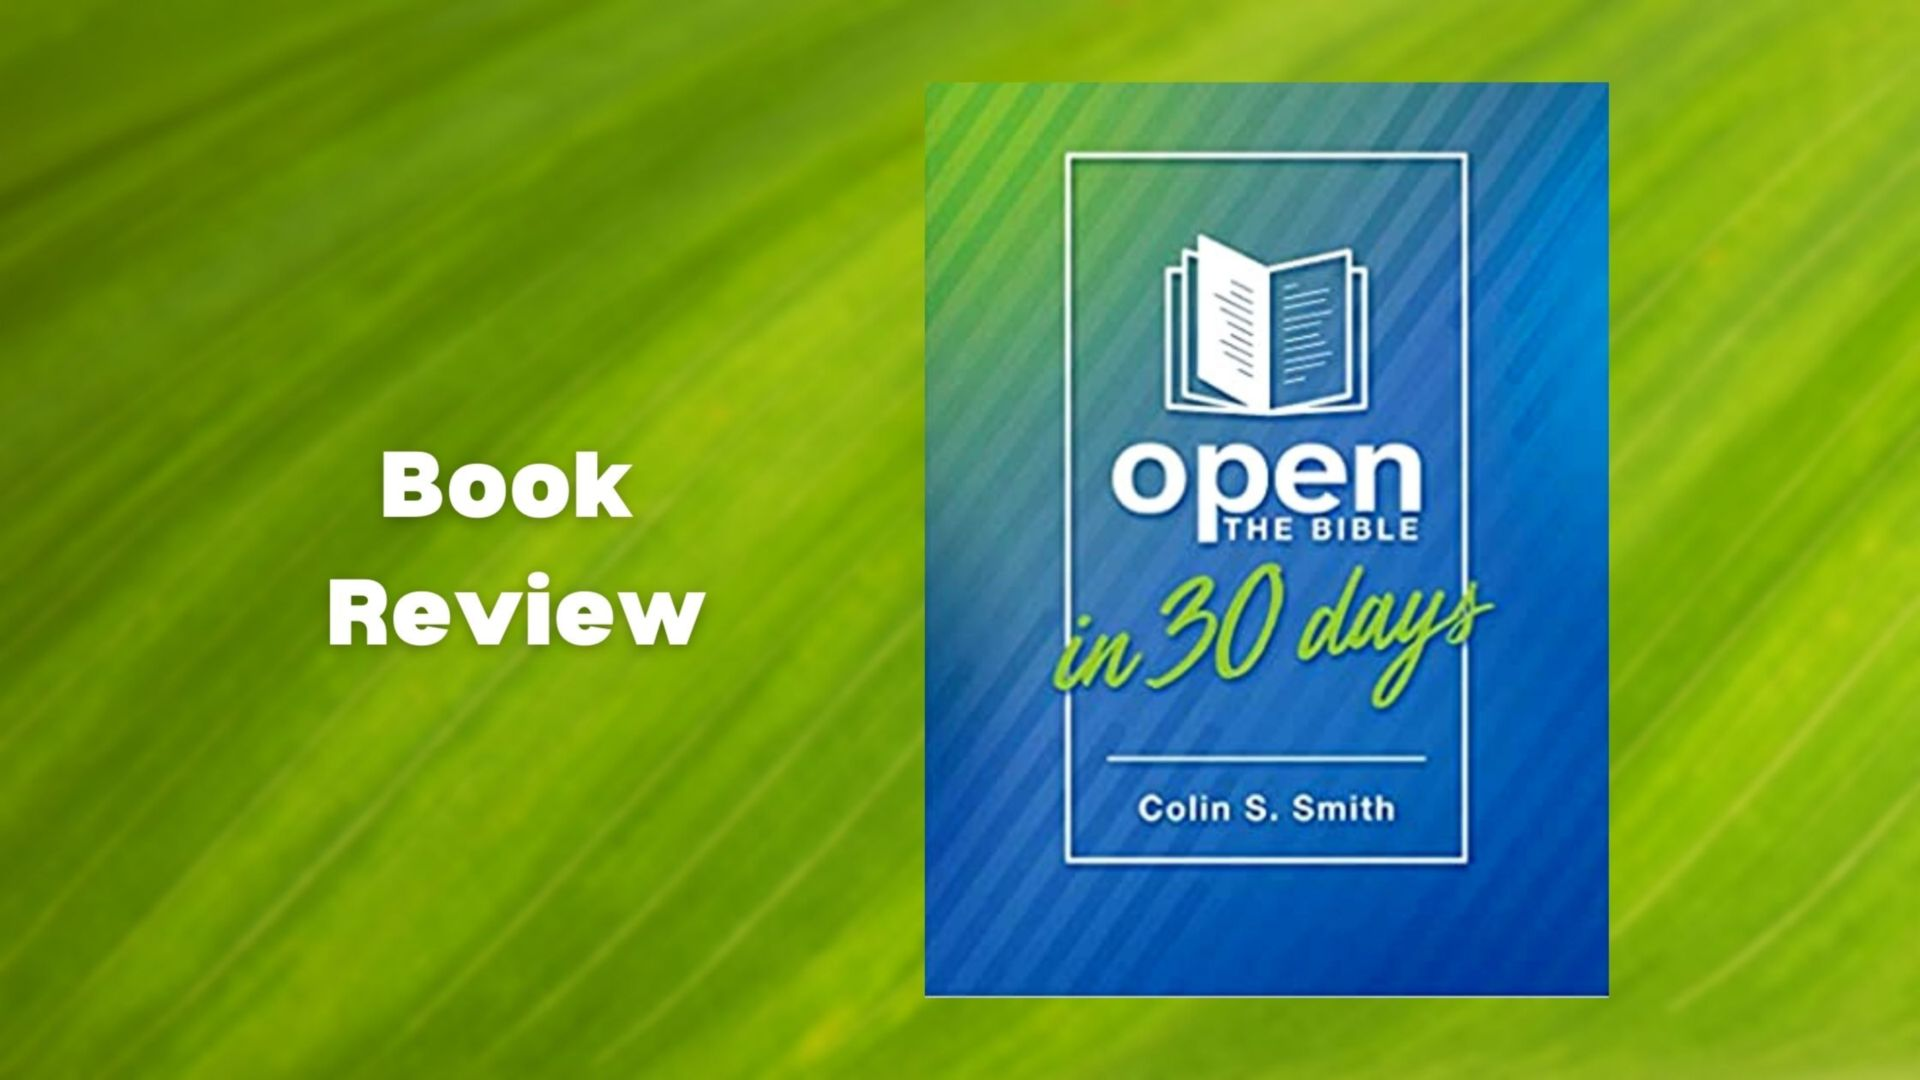 'Open the Bible in 30 Days' by Colin S Smith